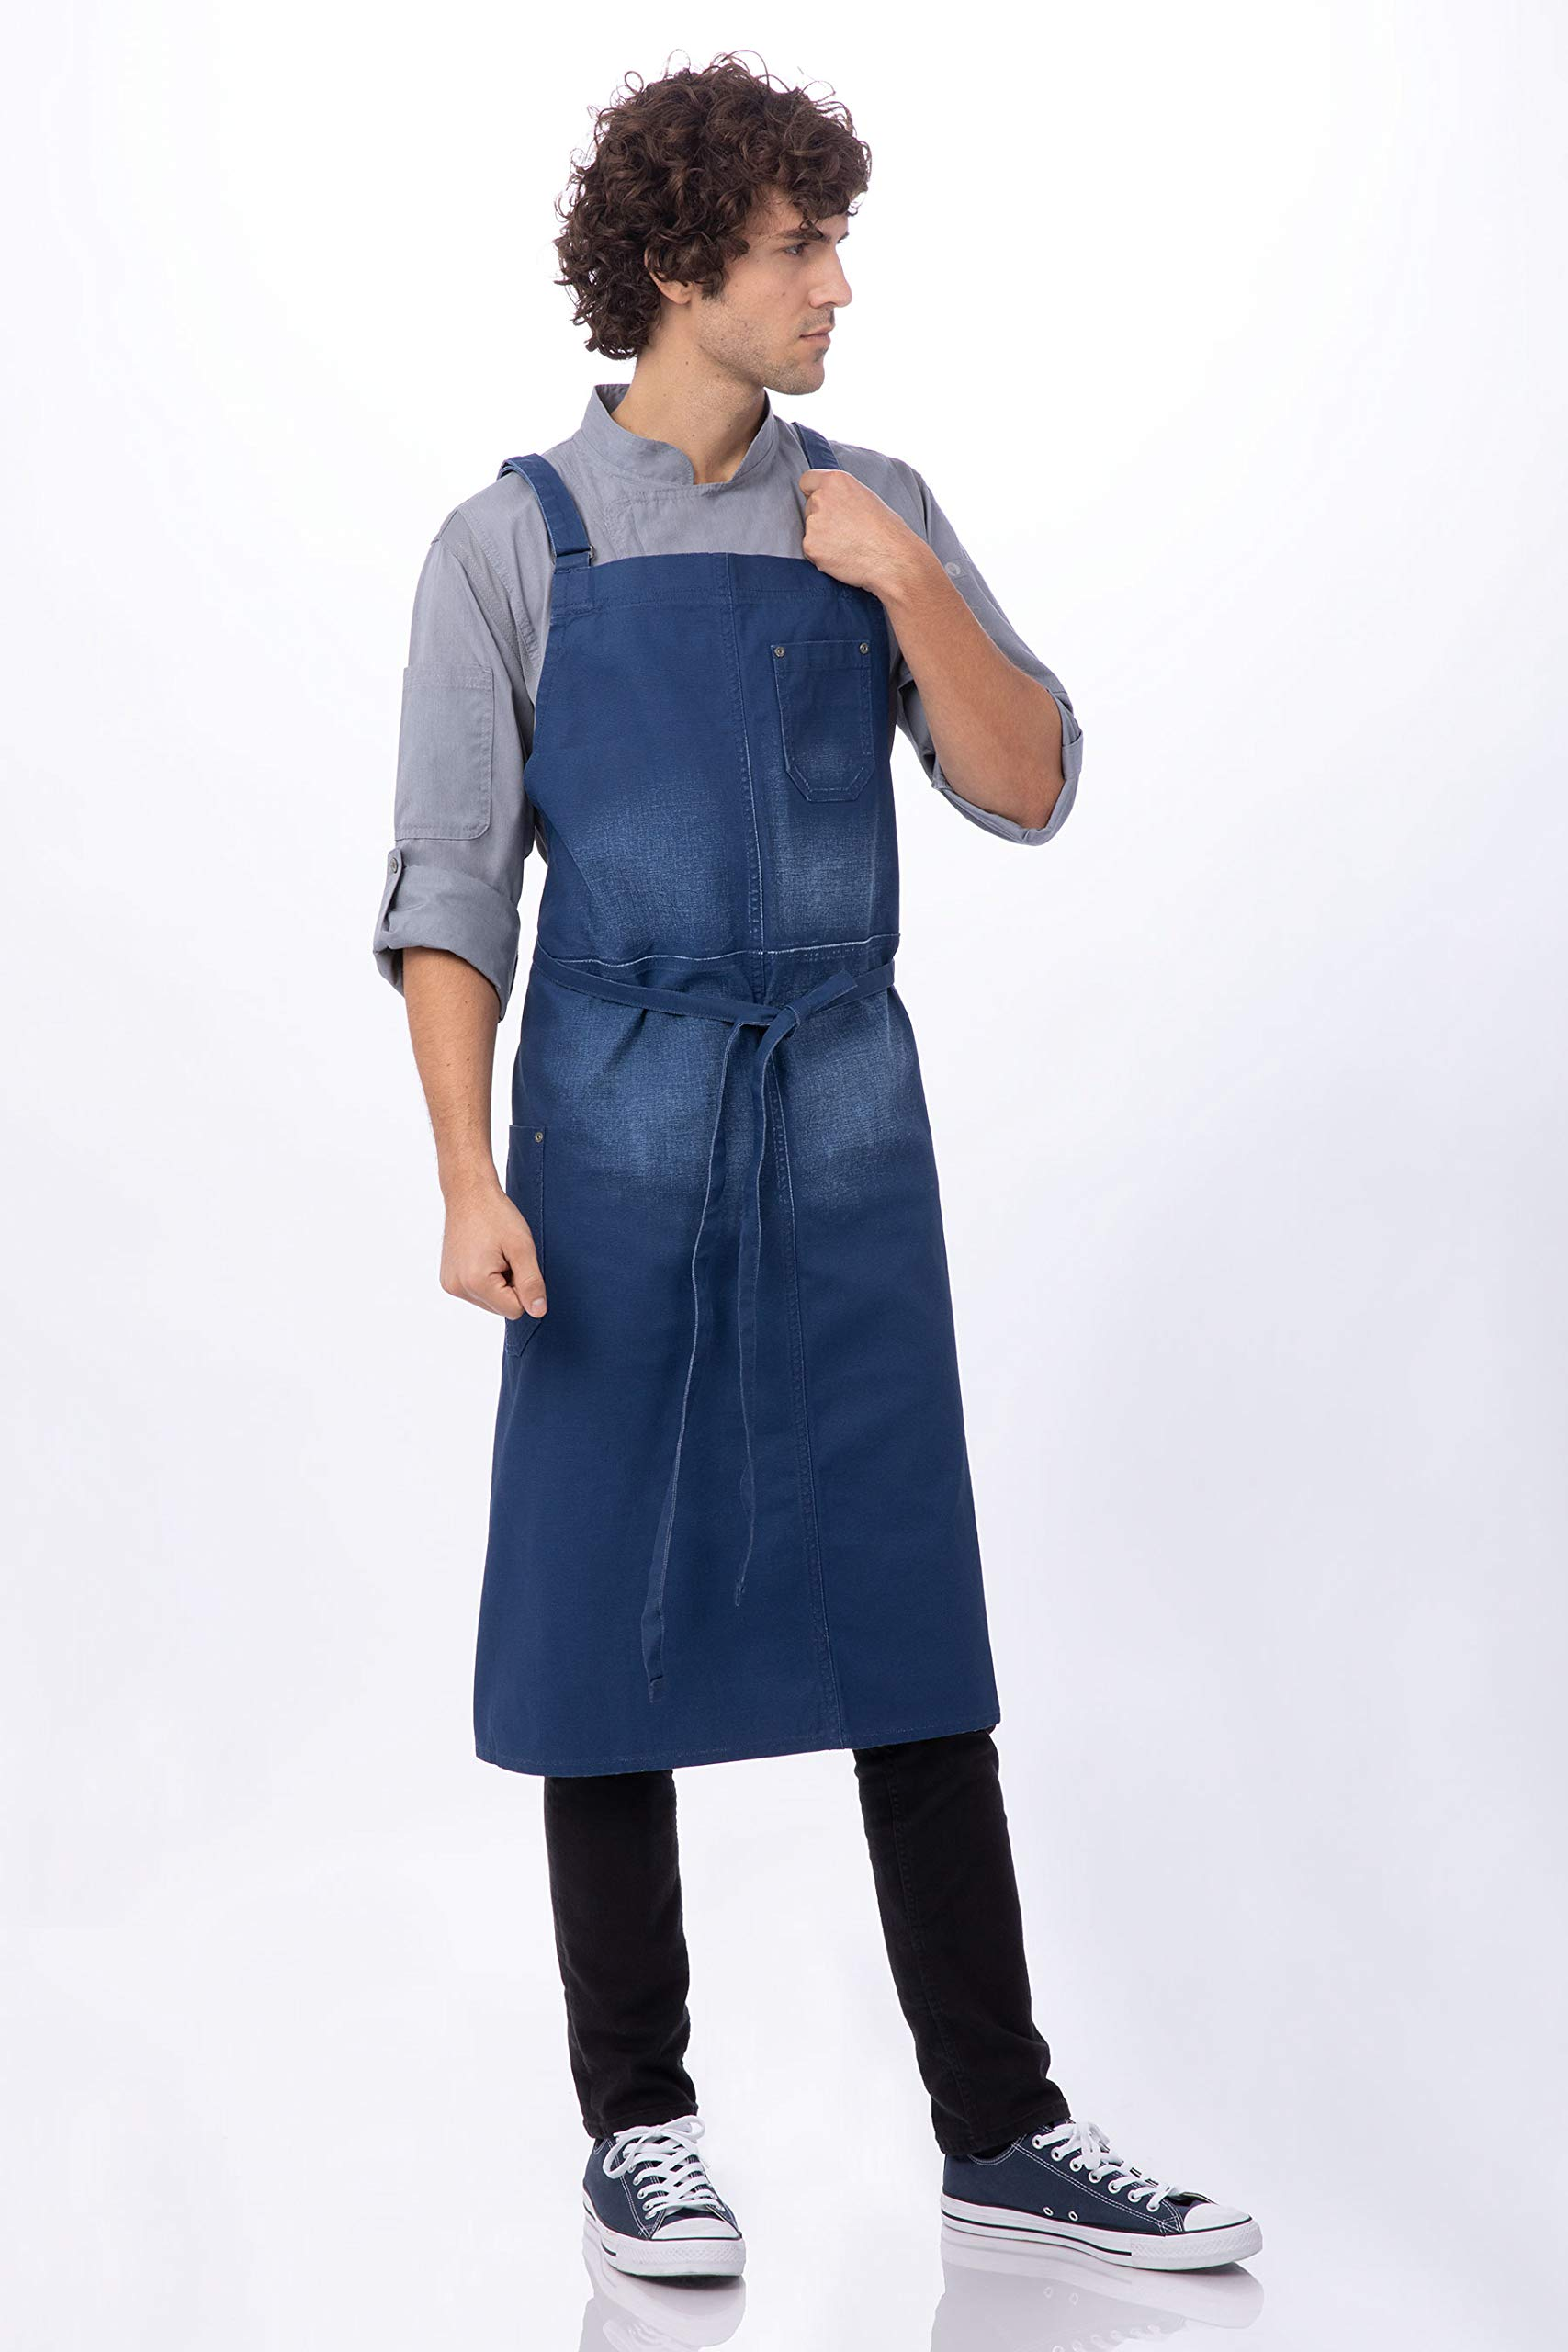 Chef Works Galveston Chefs Cross-Back Bib Apron, Royal, One Size by Chef Works